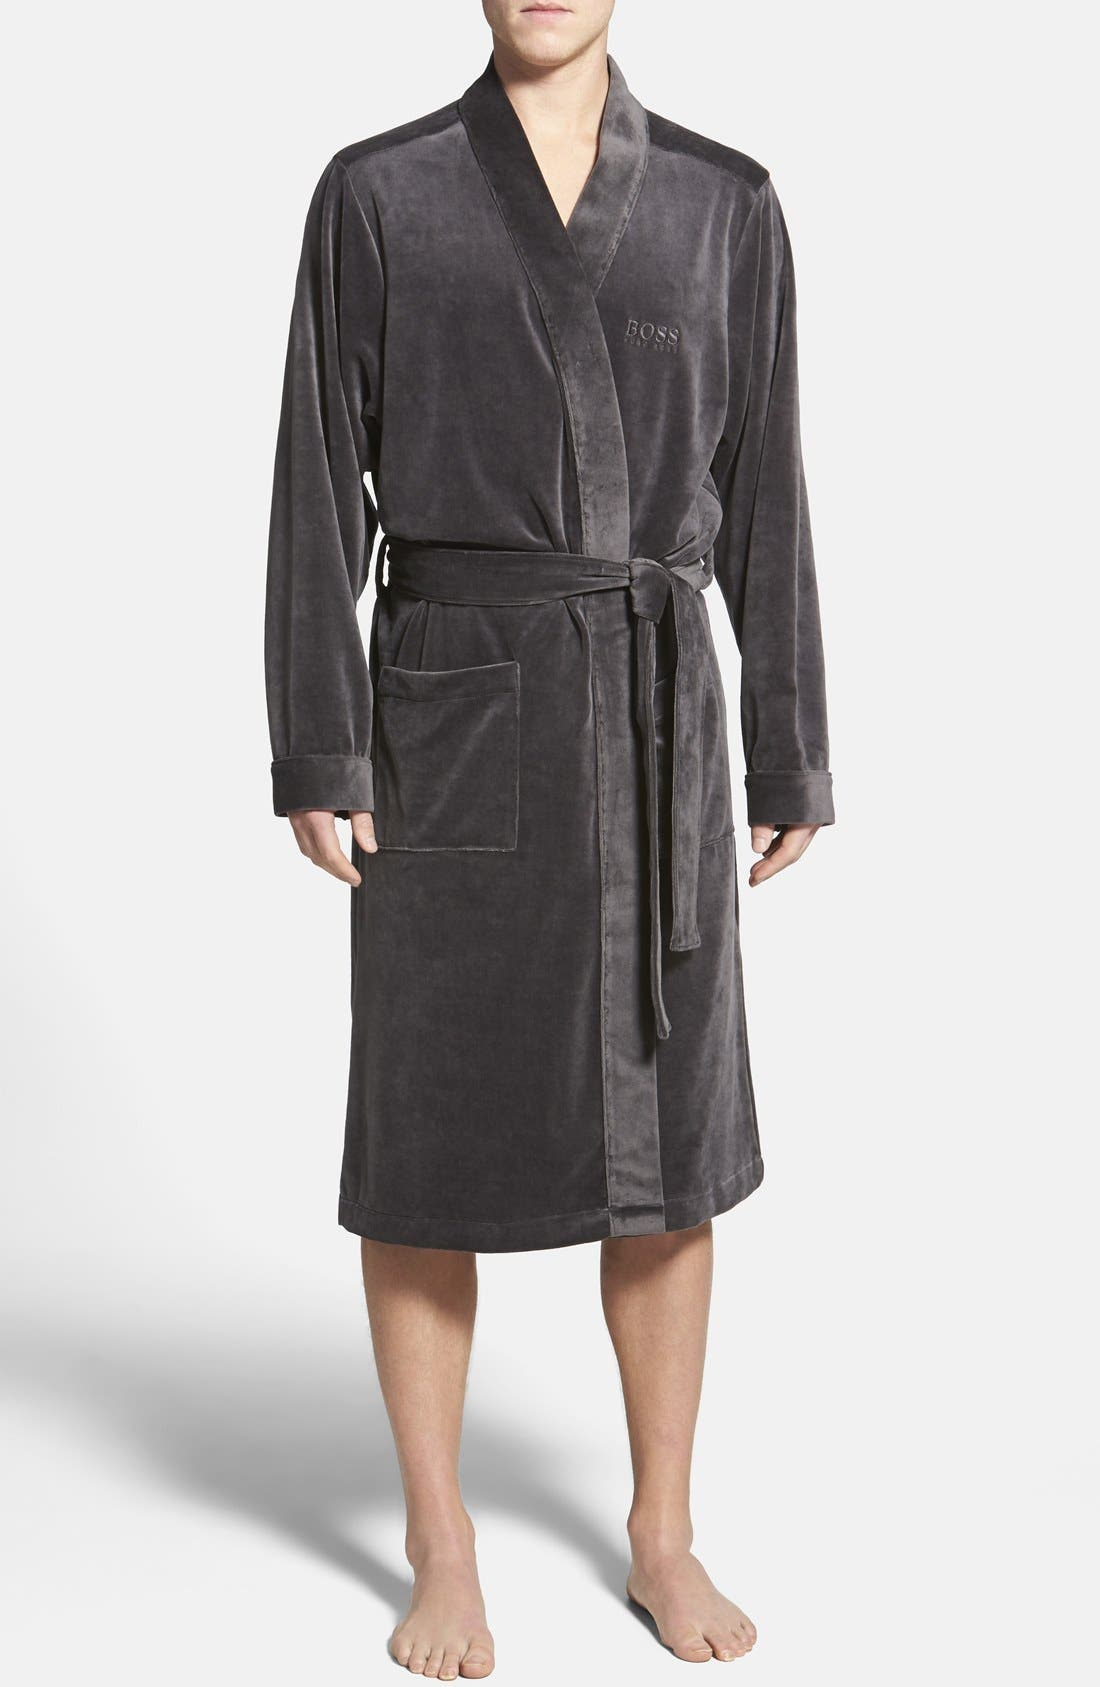 BOSS HUGO BOSS Velour Robe, Main, color, 030